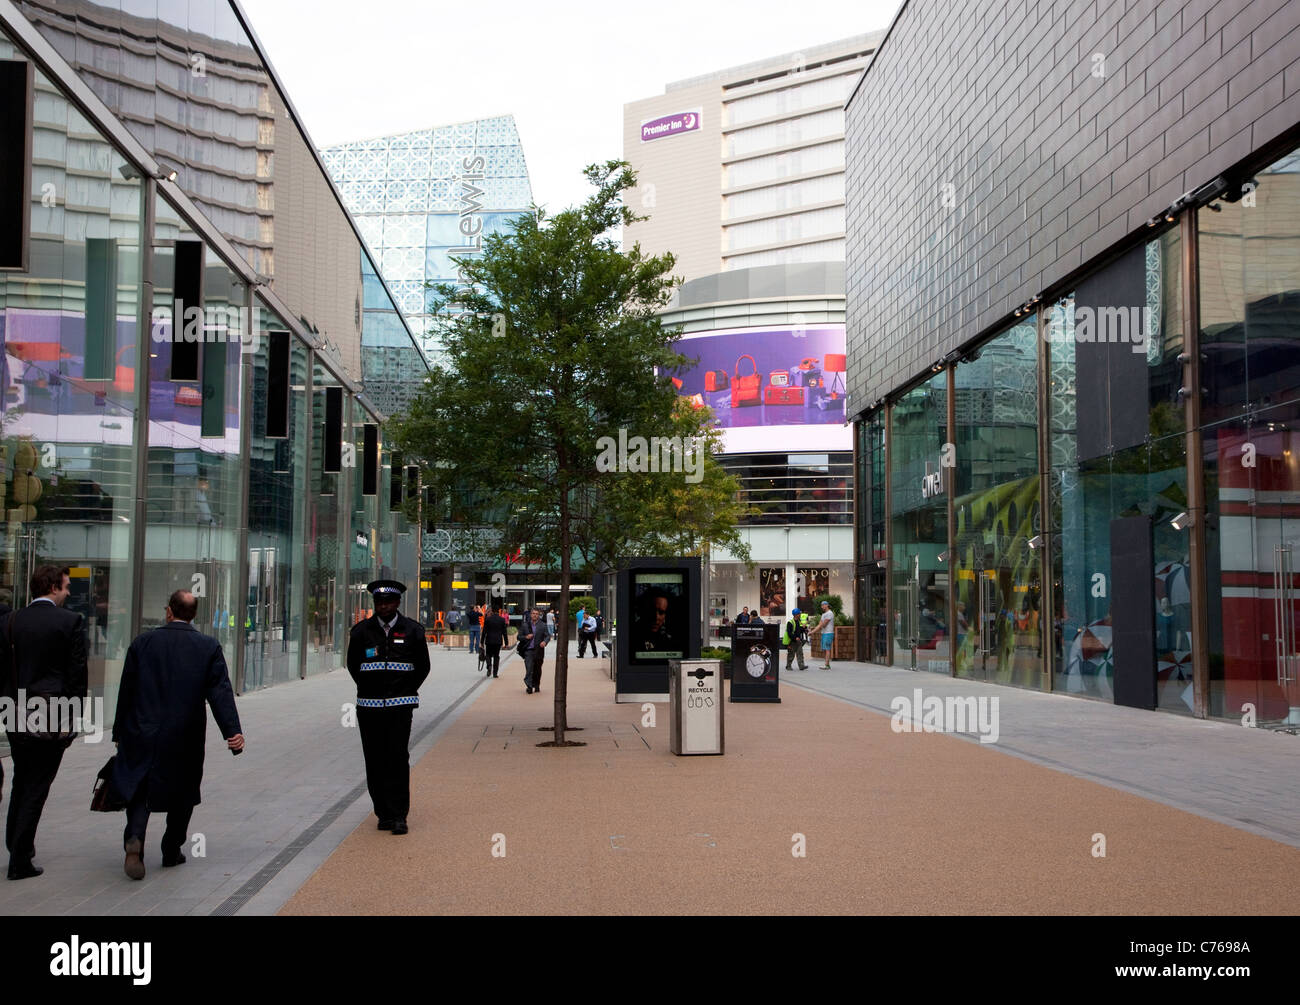 Westfield Stratford City shopping centre, London Stock Photo